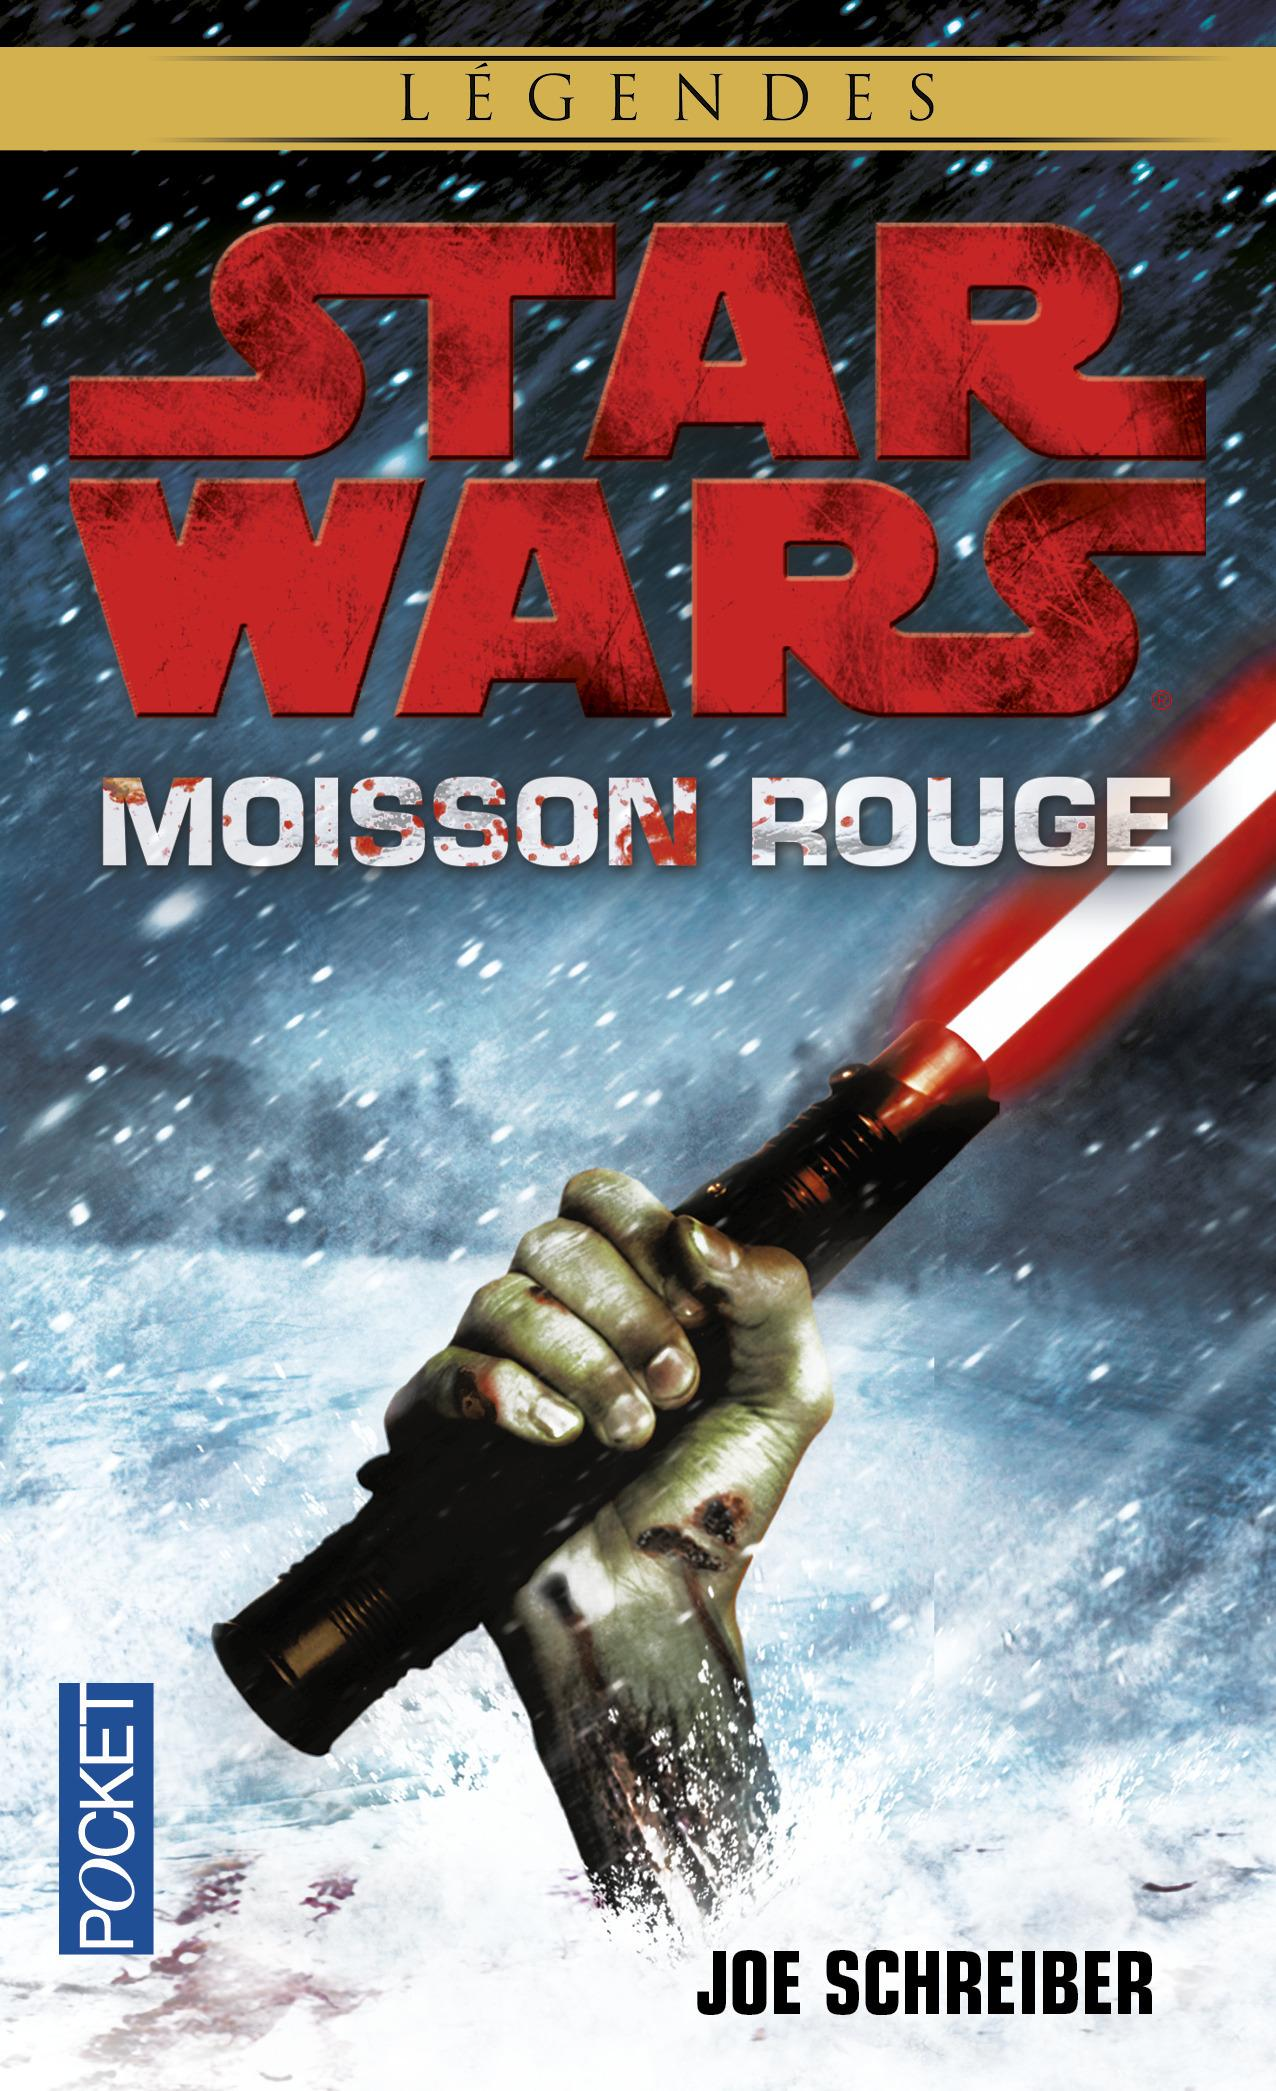 Star Wars - légendes ; moisson rouge  - Joe Schreiber